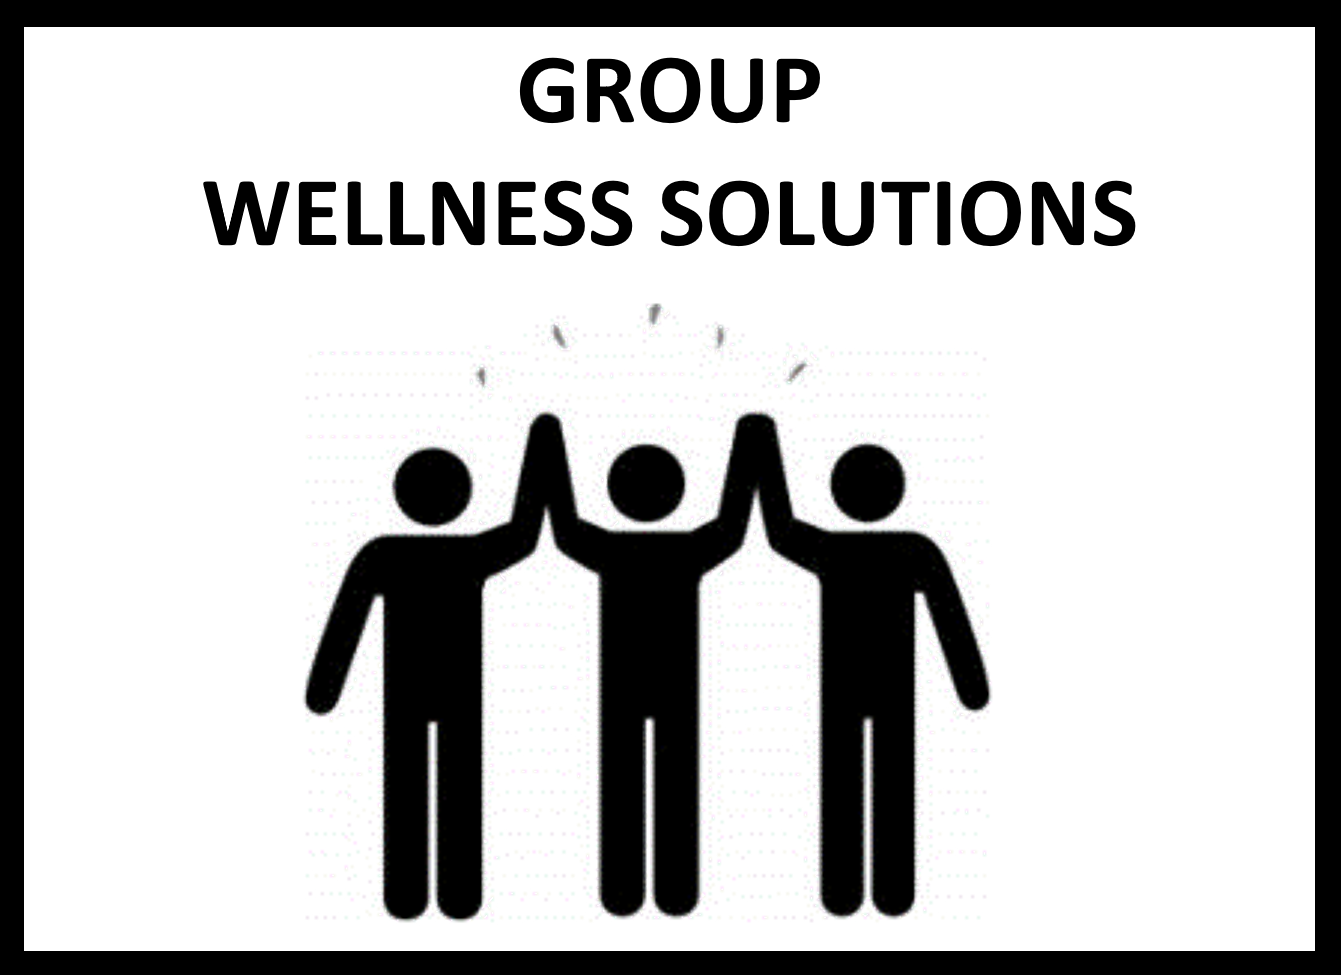 - Our customized Group Wellness Solutions provide supportive connections that create an inspiring culture of great health, support and wellbeing. From group exercise programs to weight loss challenges, this option is ideal for groups of people who share similar fitness and body composition goals. The synergy that we build together fuels each person's goal achievement and wellness success!START HERE →